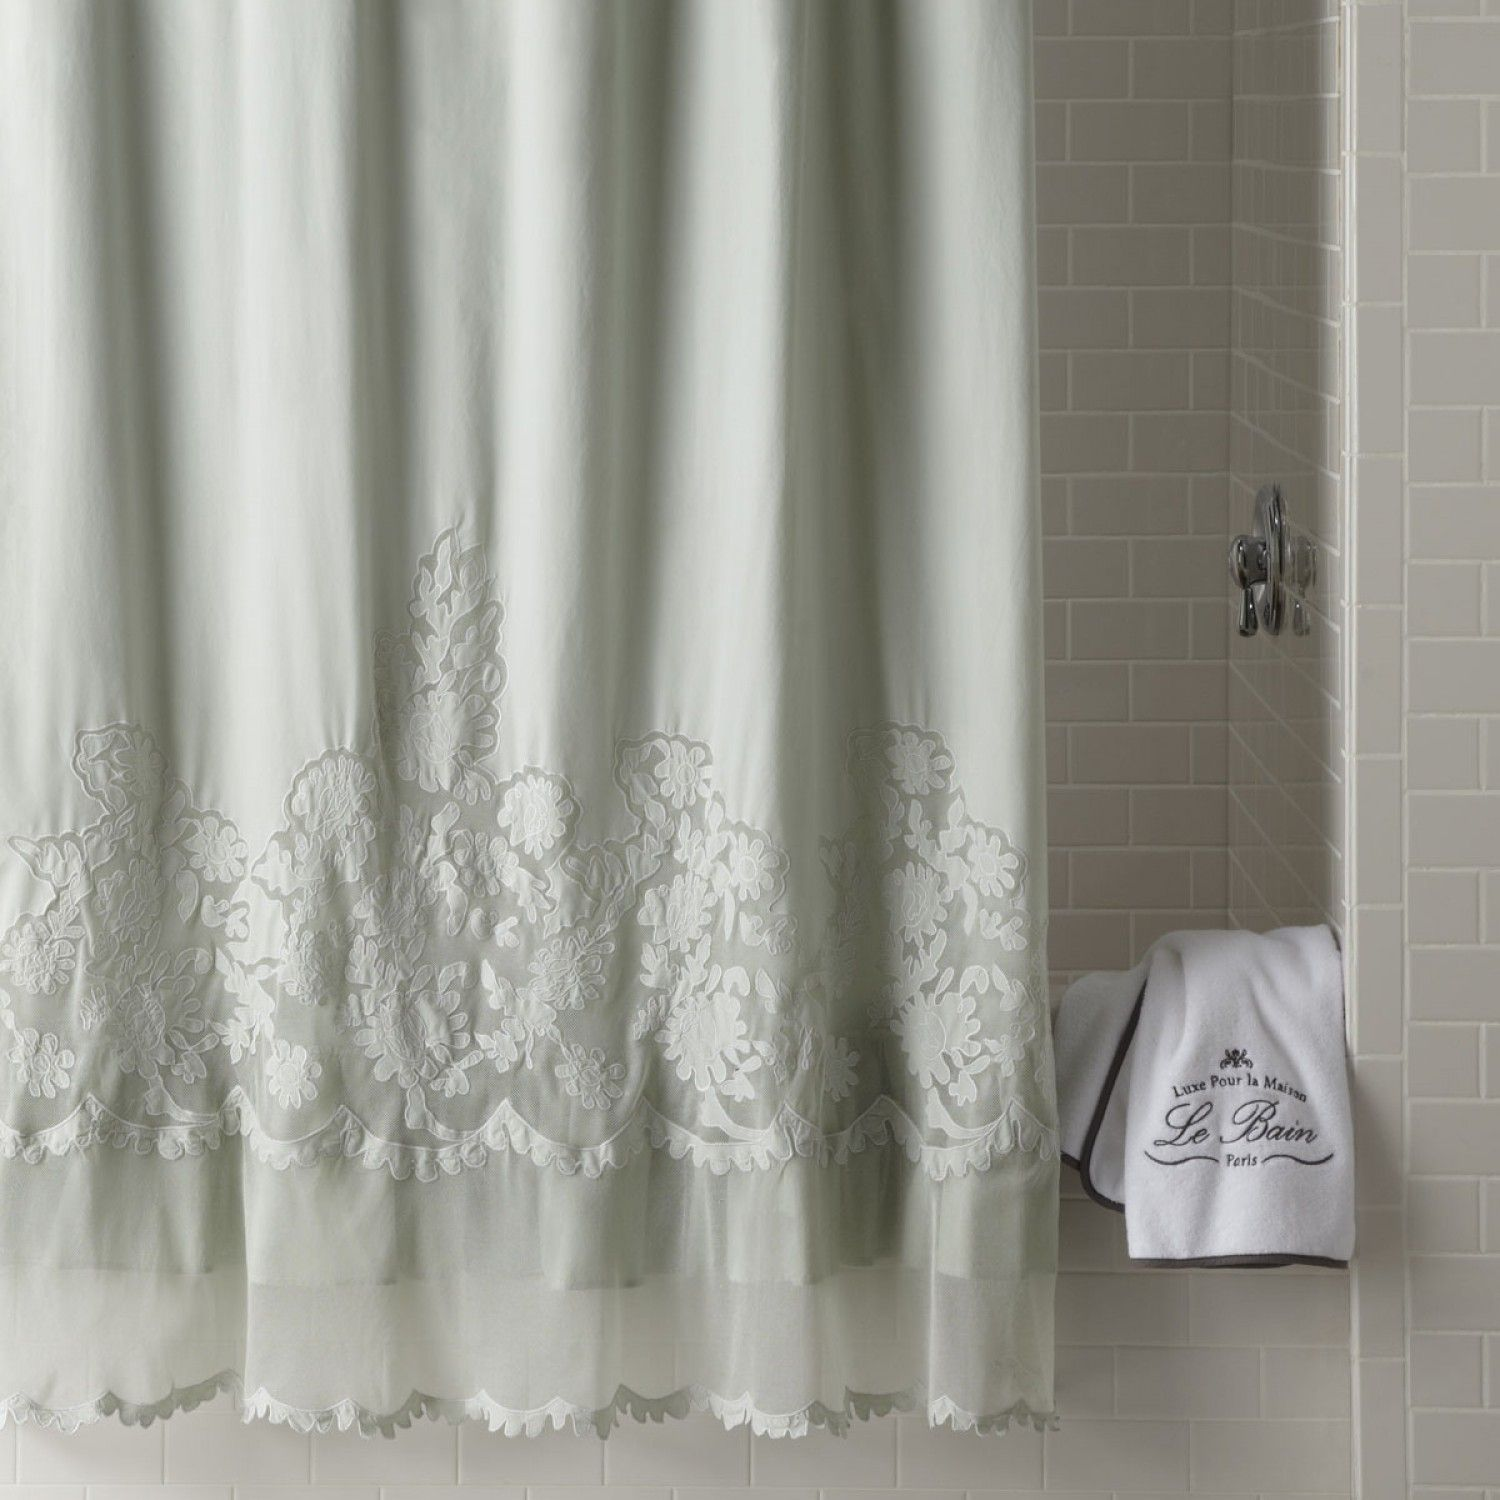 Fabric Shower Curtains Are The Most Elegant Of All Designer Shower